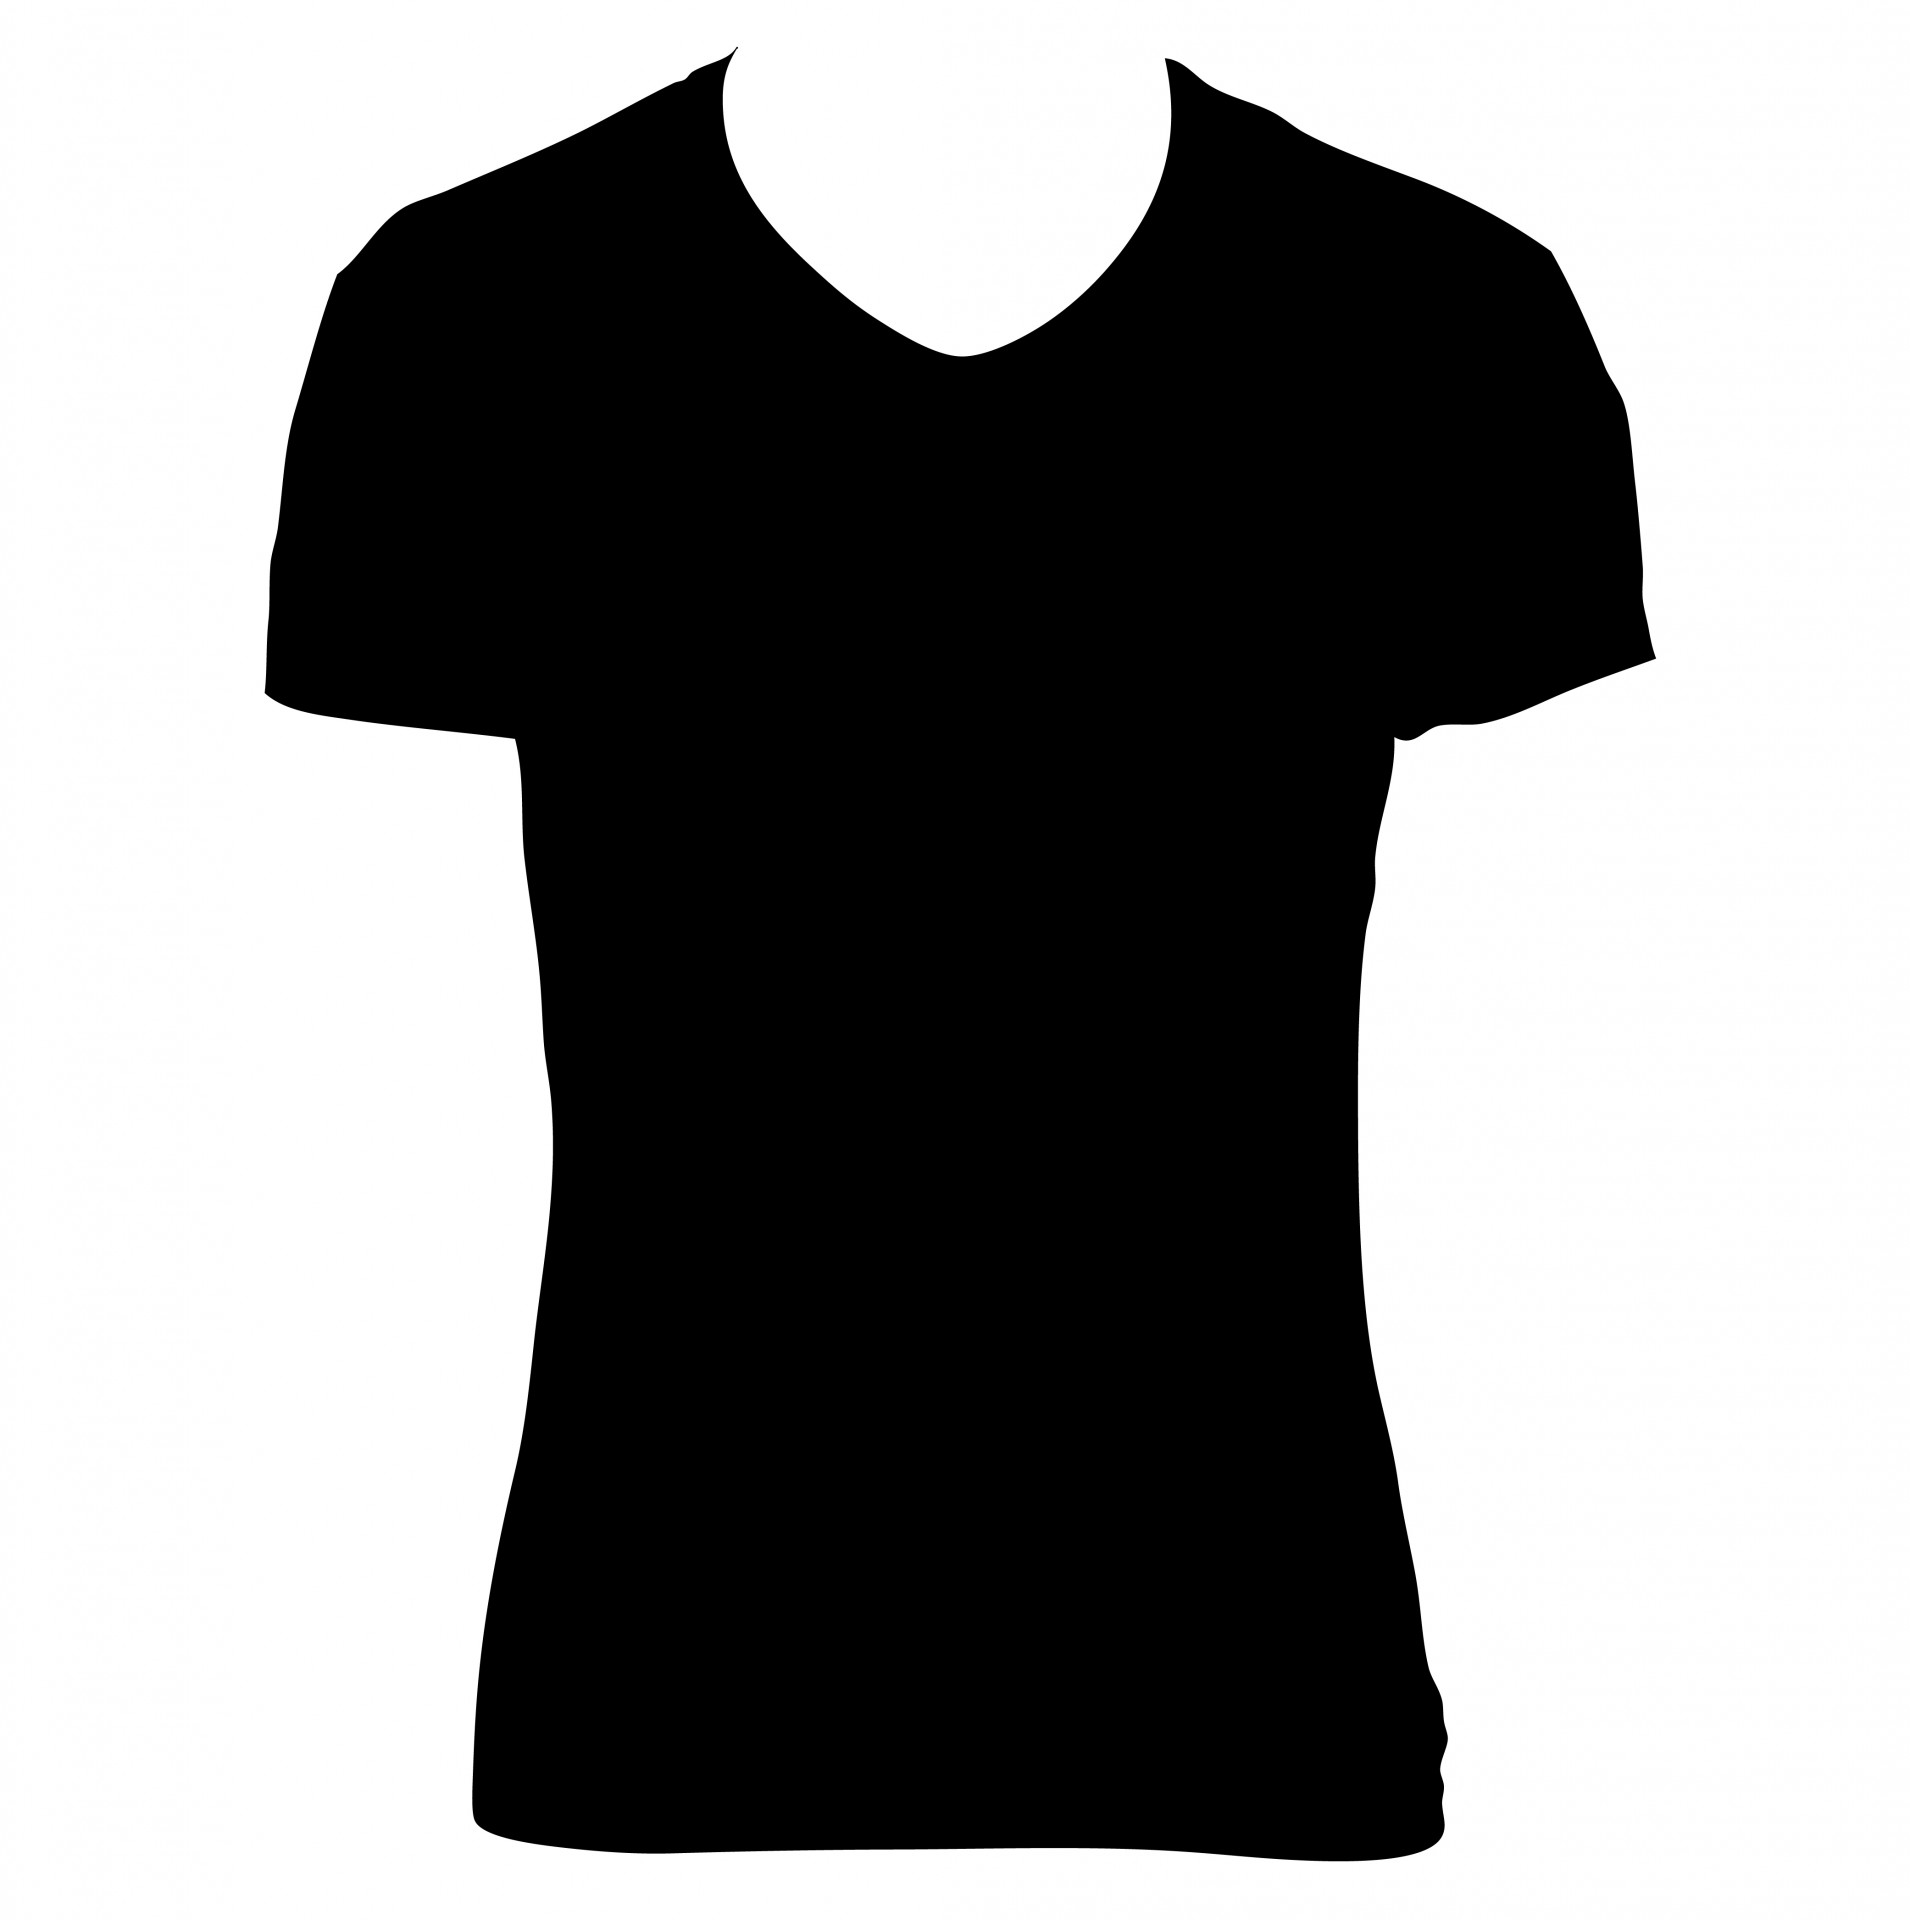 Black T-shirt Clipart Free Stock Photo - Public Domain Pictures graphic free